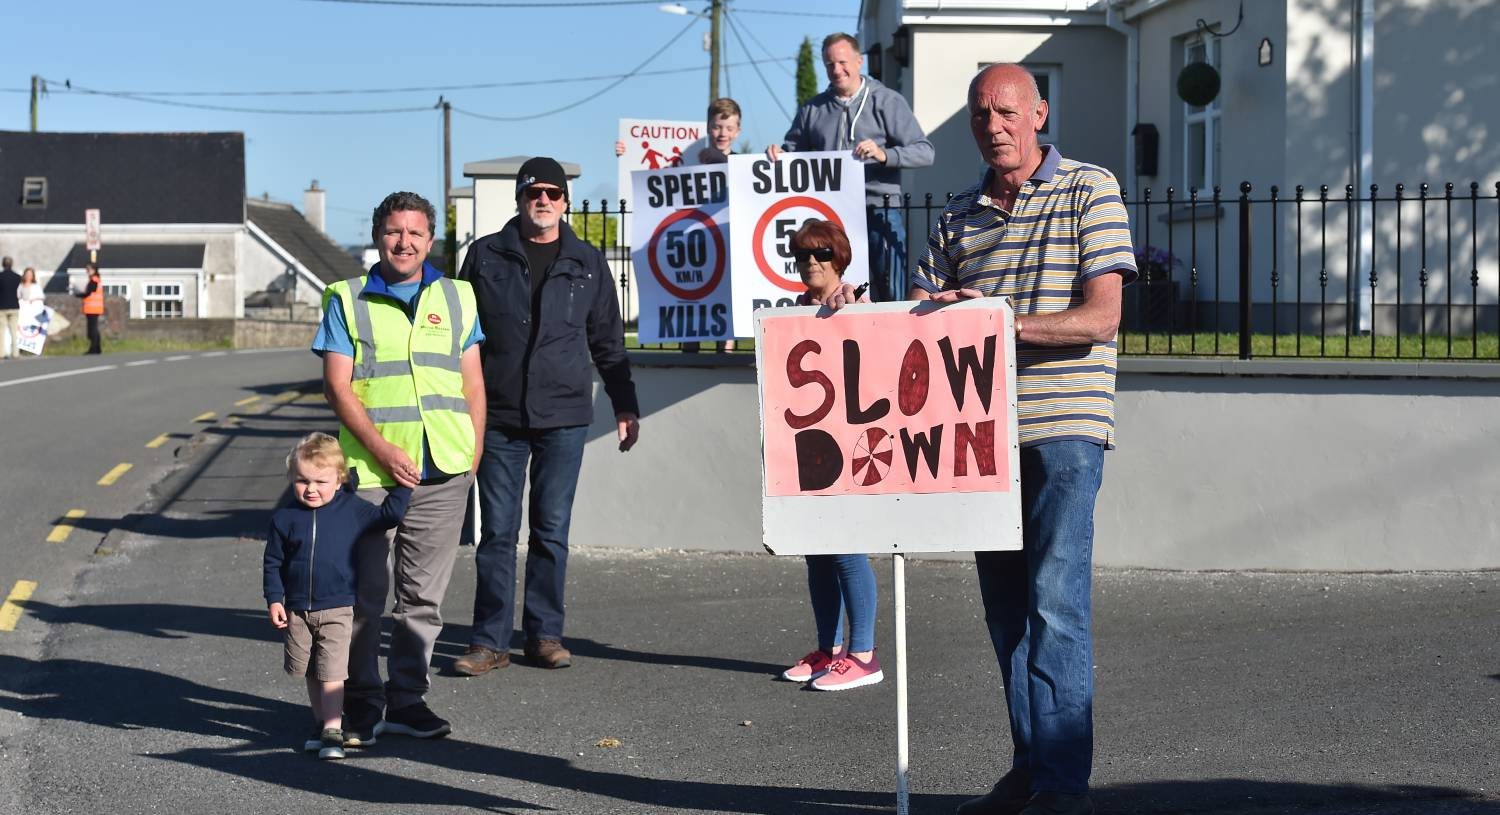 Cork residents plead for road safety measures 'before lives are lost'